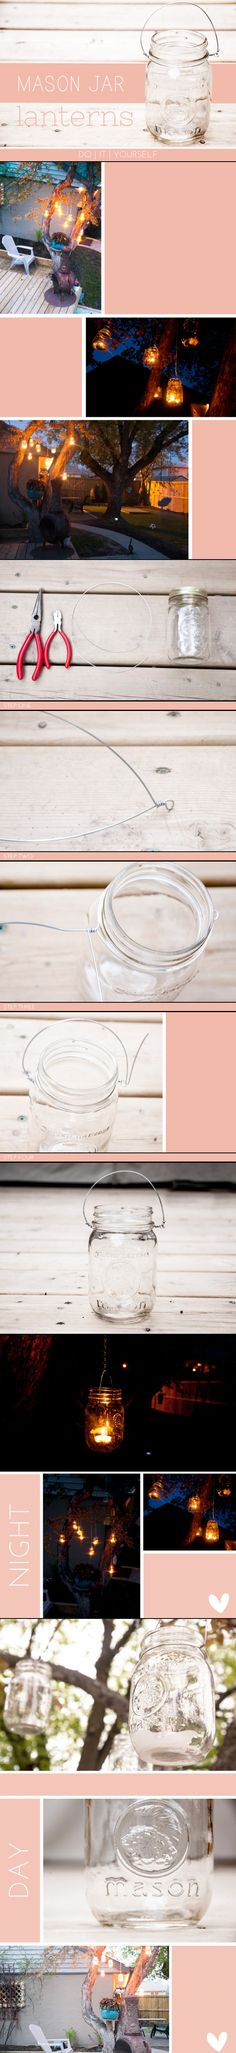 Clever and easy DIY Mason Jar Hanging Lanterns - Founded at Petite Raisin